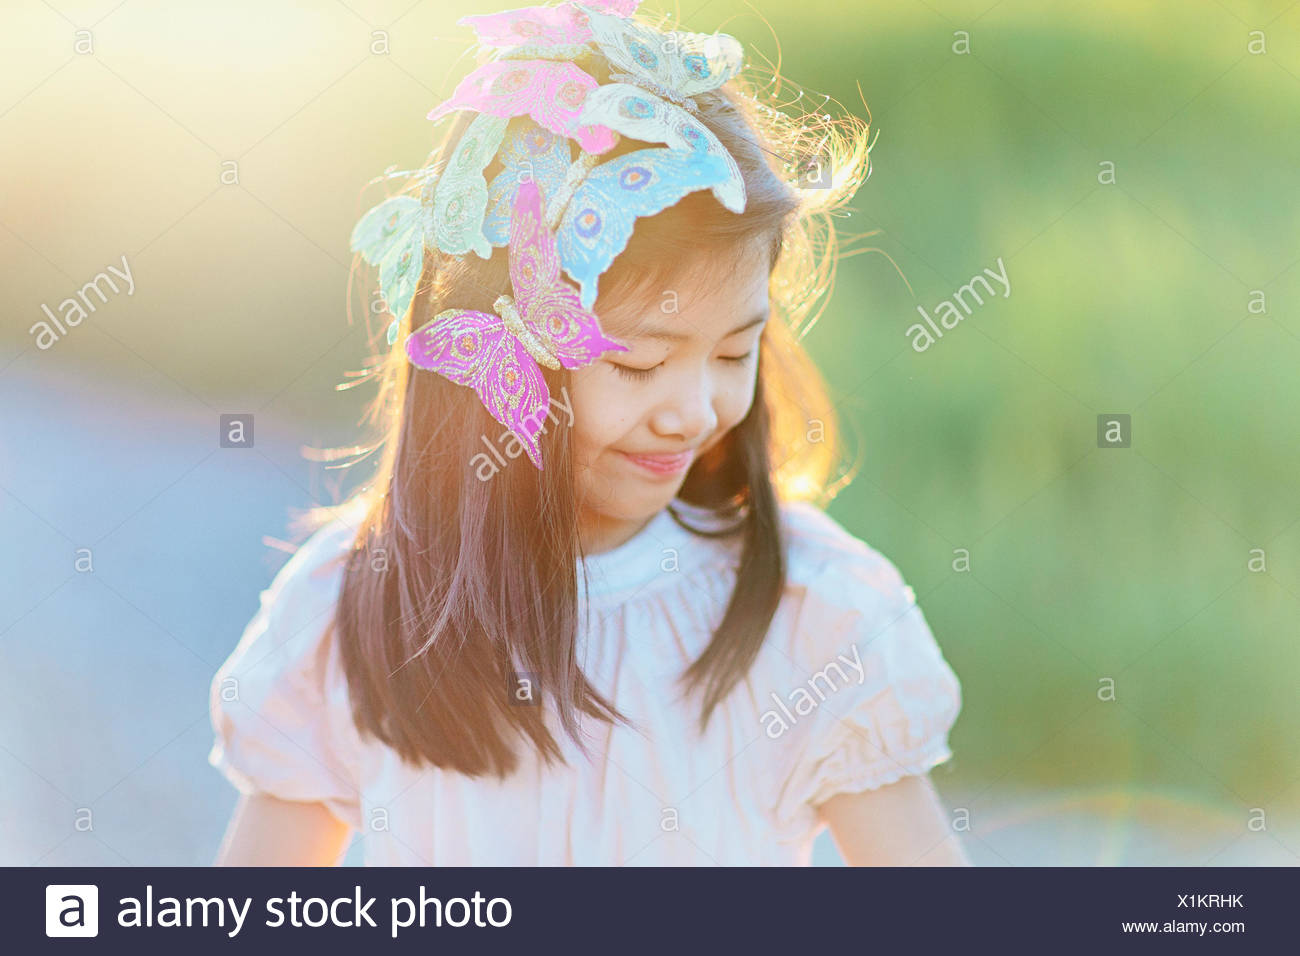 Girl (8-9) with butterflies in hair - Stock Image